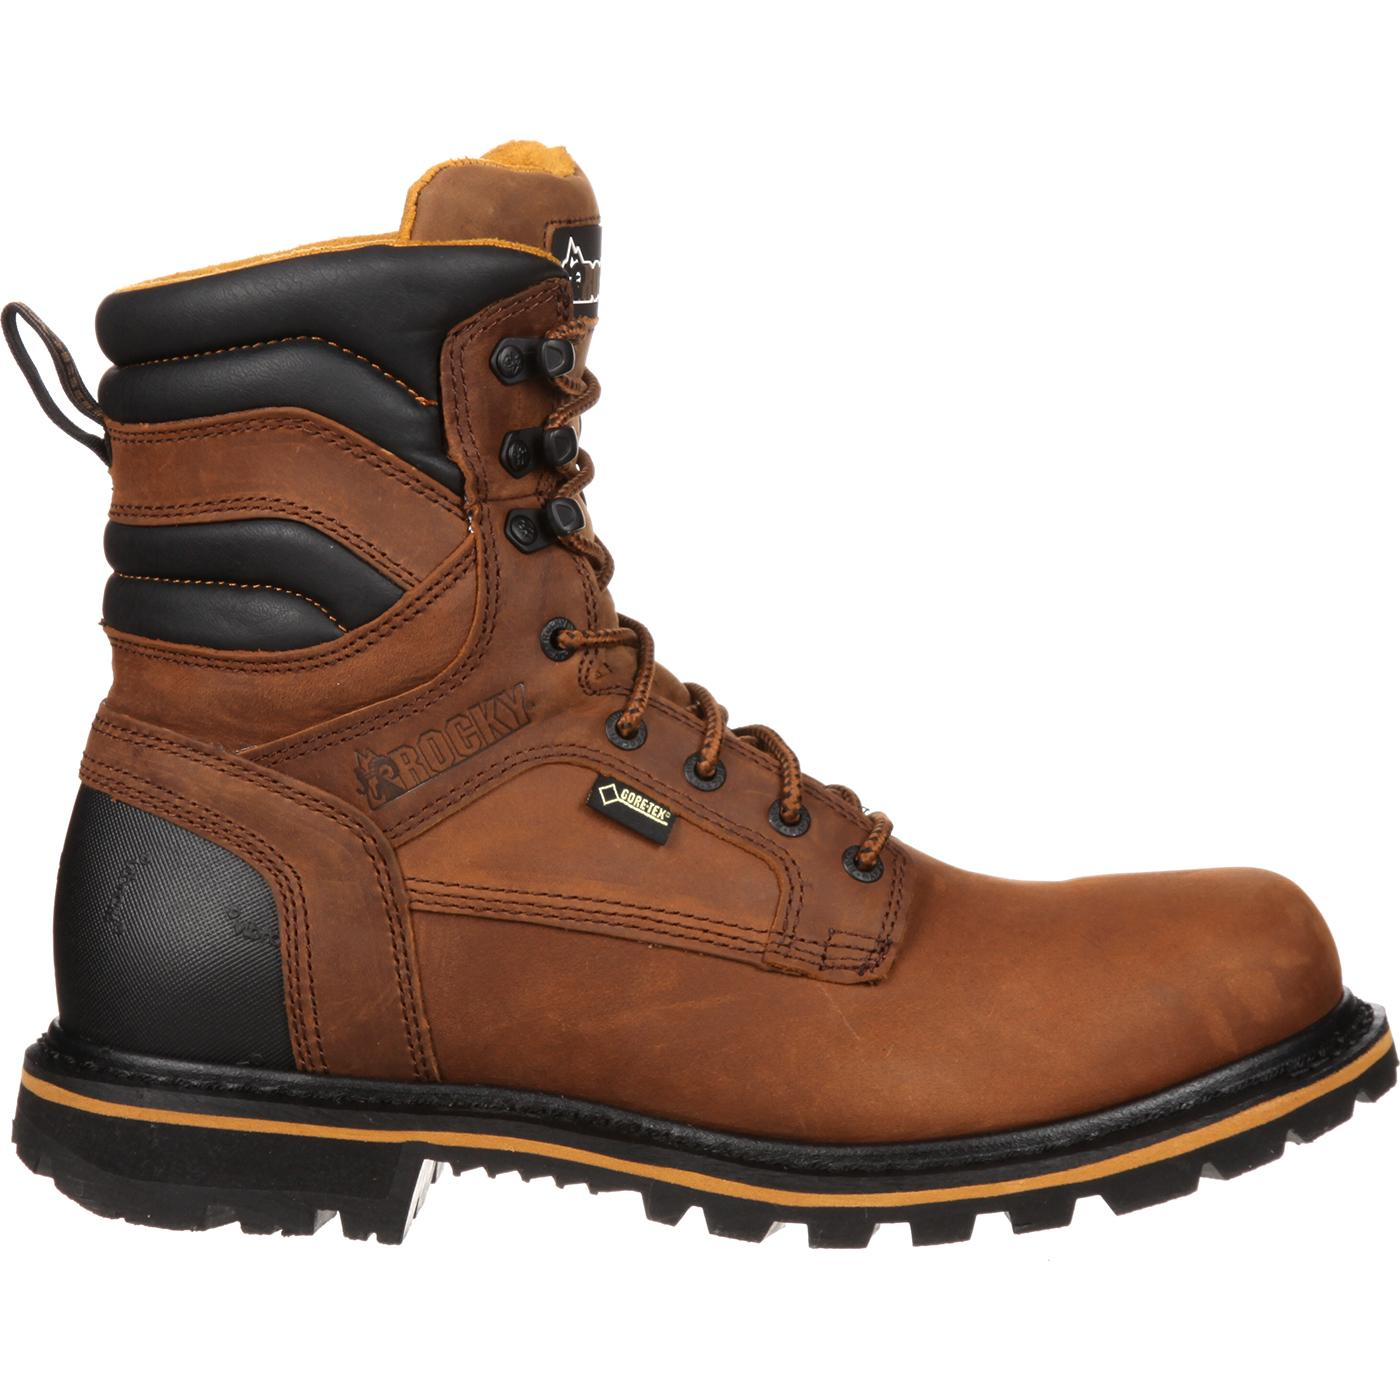 22f4d824ffd Rocky Governor GORE-TEX® Waterproof Work Boot